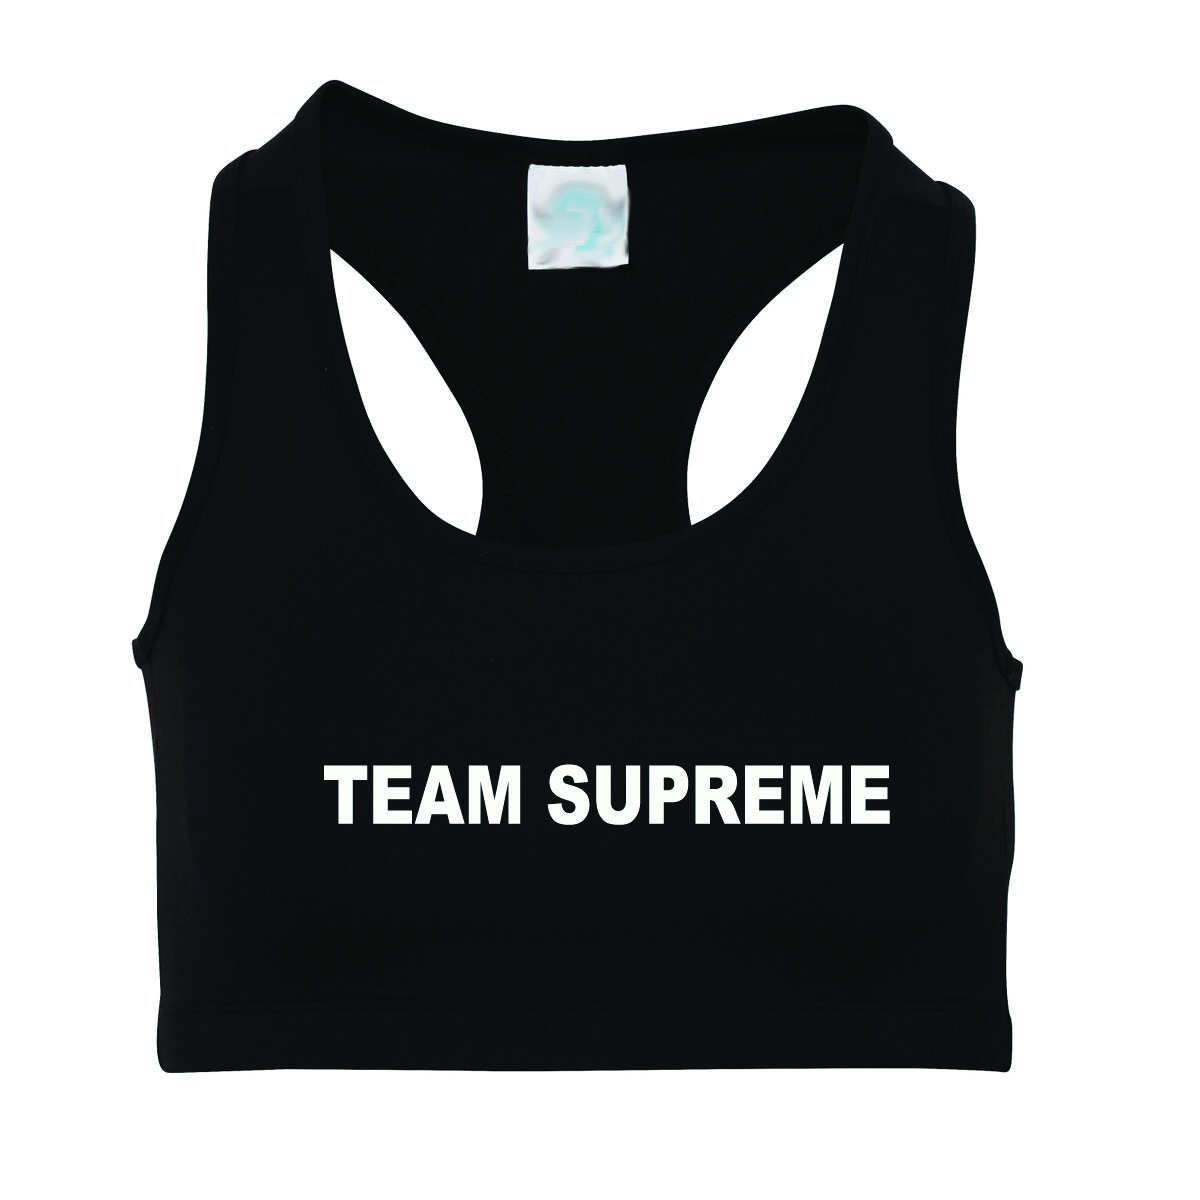 Team Supreme Fitness Top